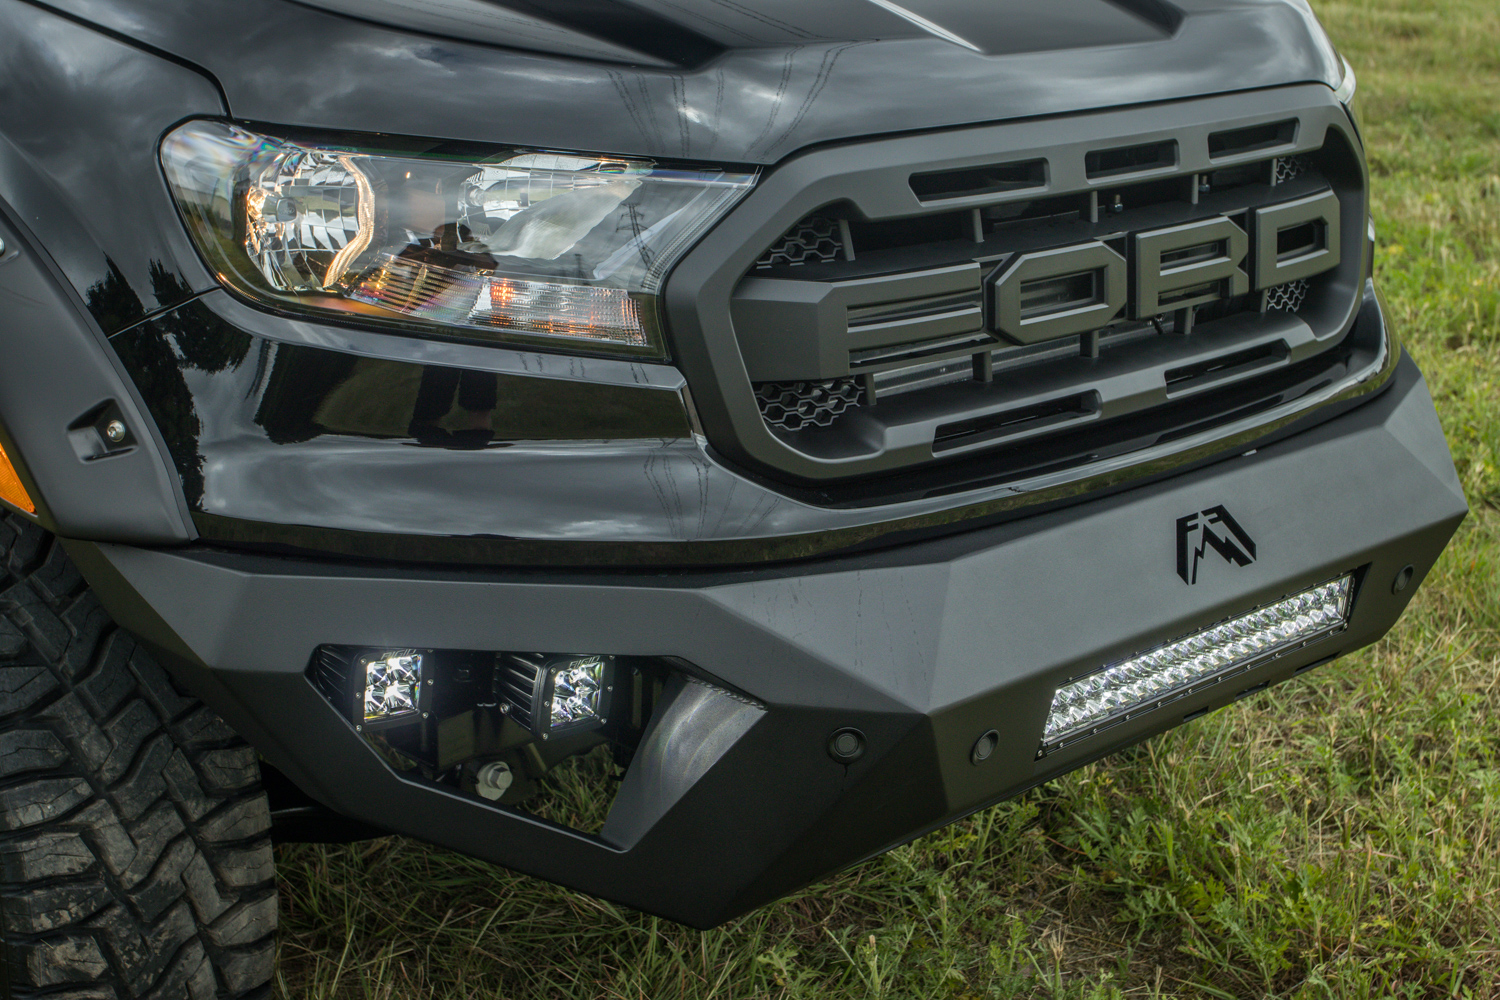 New Ford Ranger 4x4 Lifted With Raptor Style Grill And Fabfours Bumper